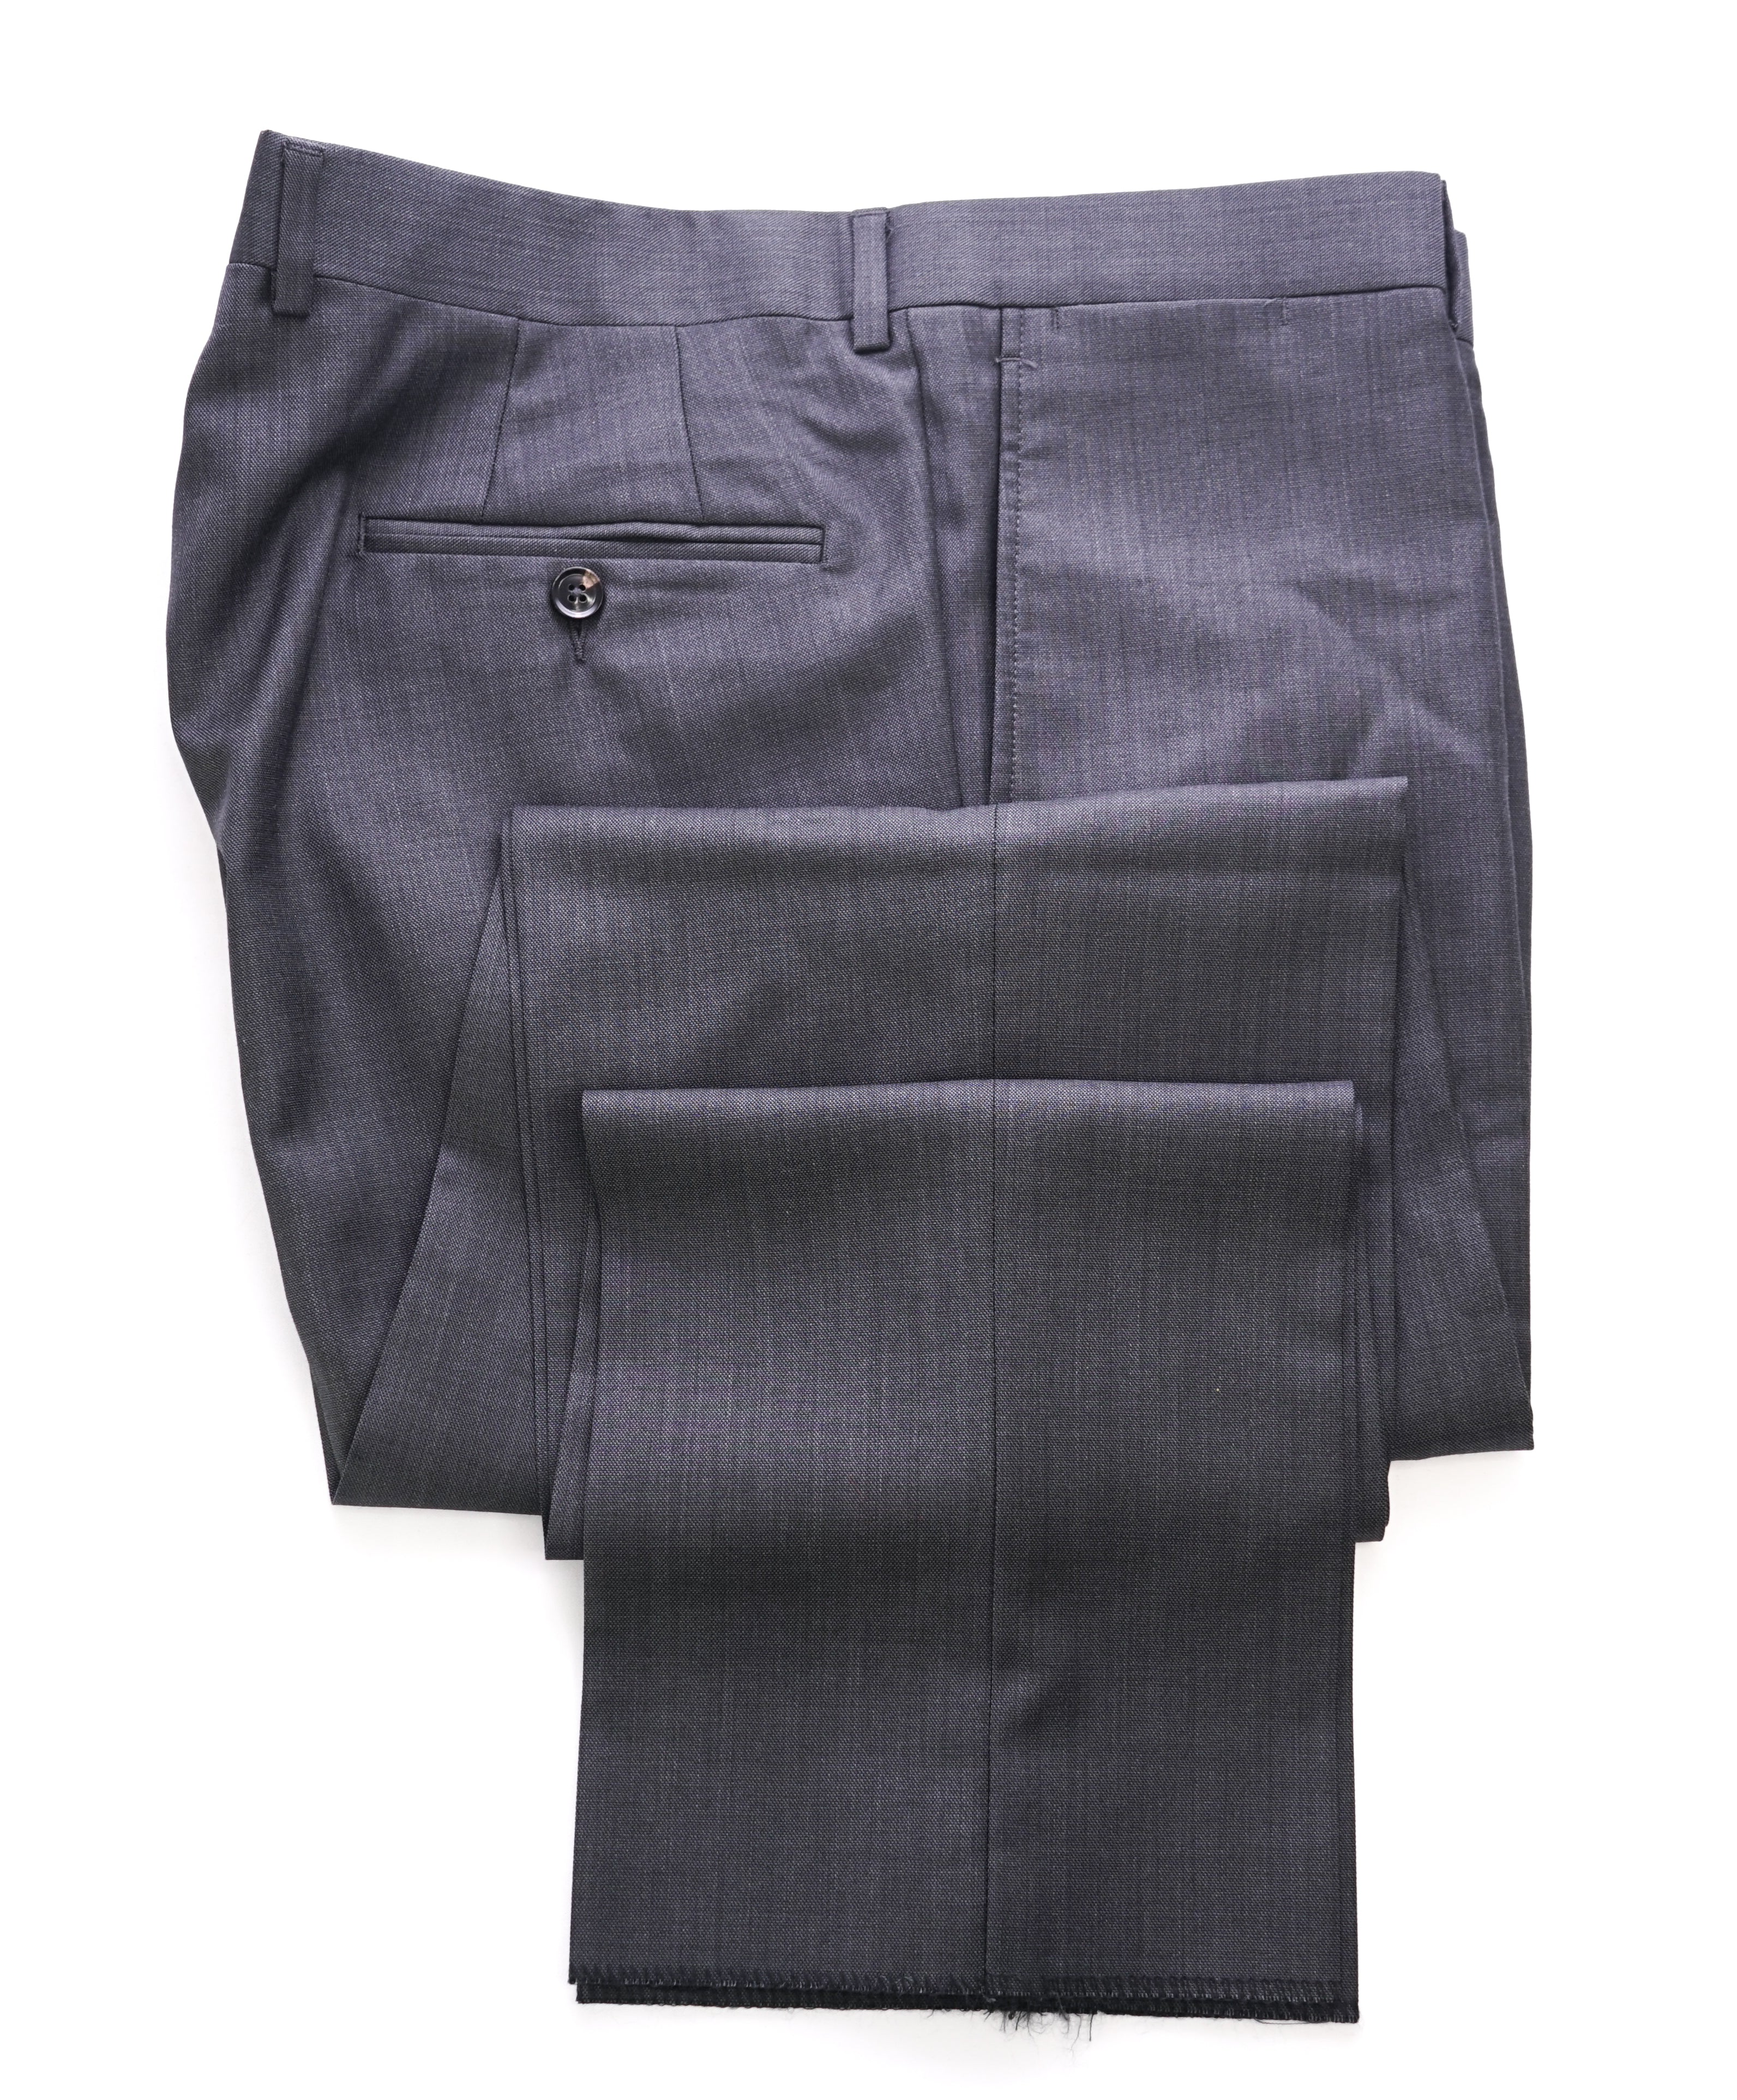 TED BAKER - Solid Charcoal Wool Flat Front Dress Pants - 37W